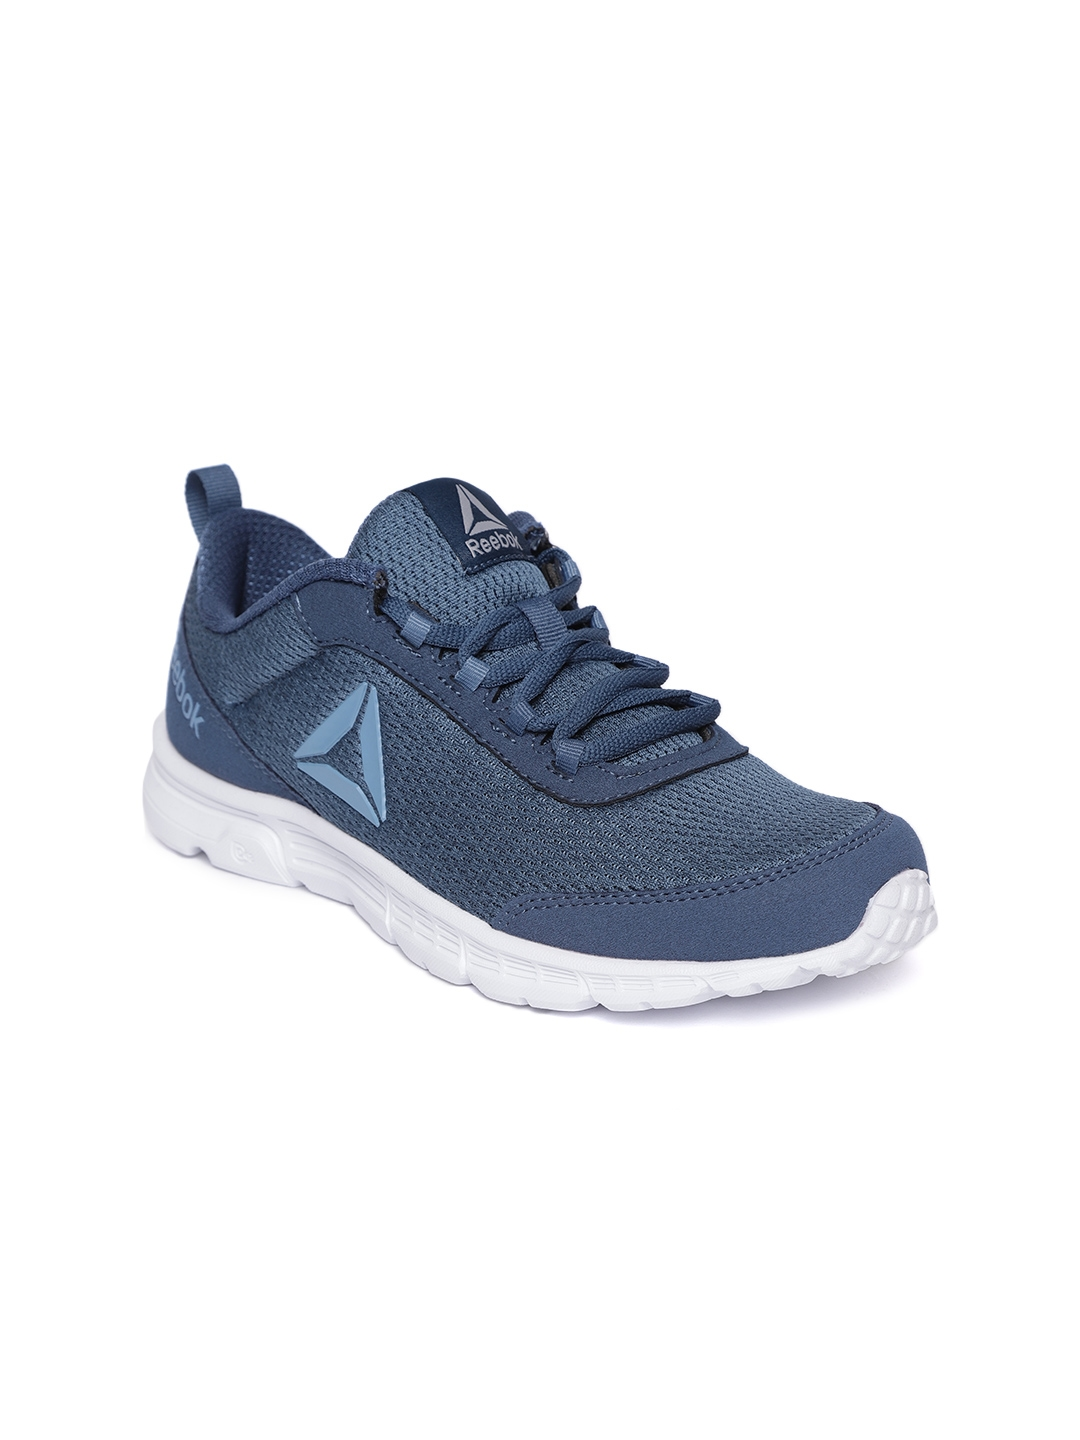 734f3993bc0 Buy Reebok Women Teal Running Shoes - Sports Shoes for Women 6917103 ...